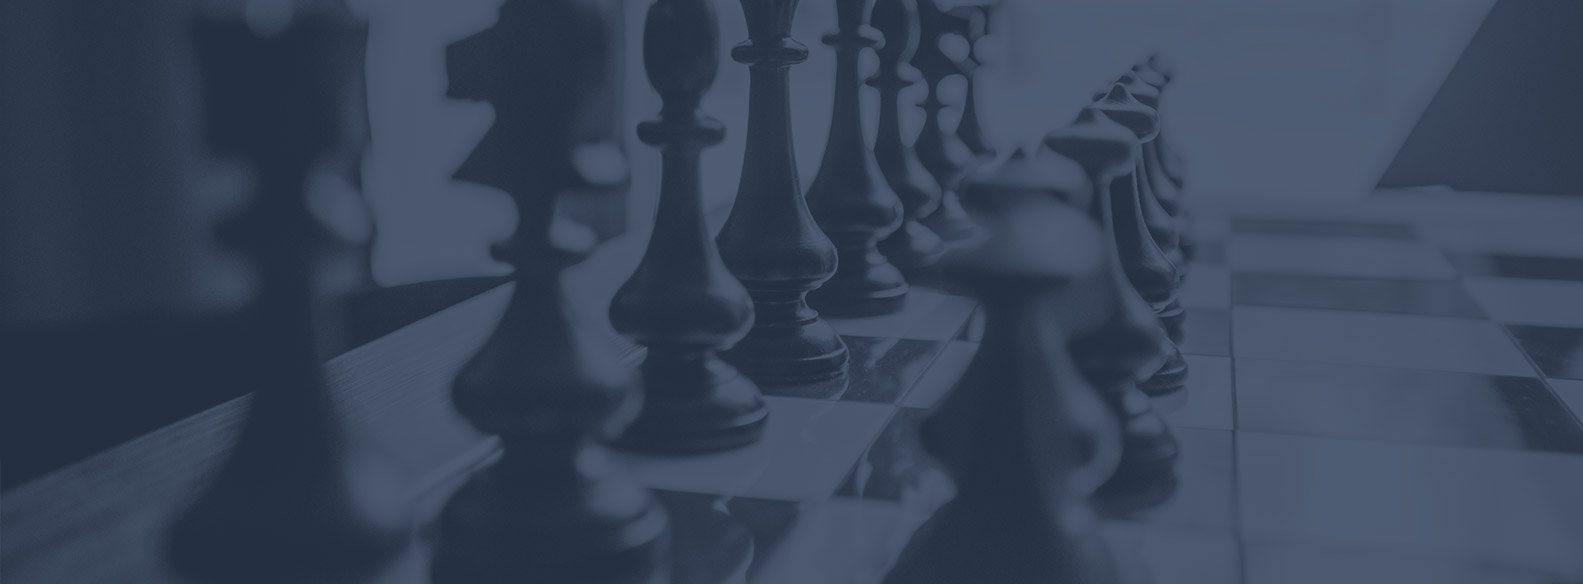 A chess board with chess pieces representing Diligentiam leading the way in due diligence strategy